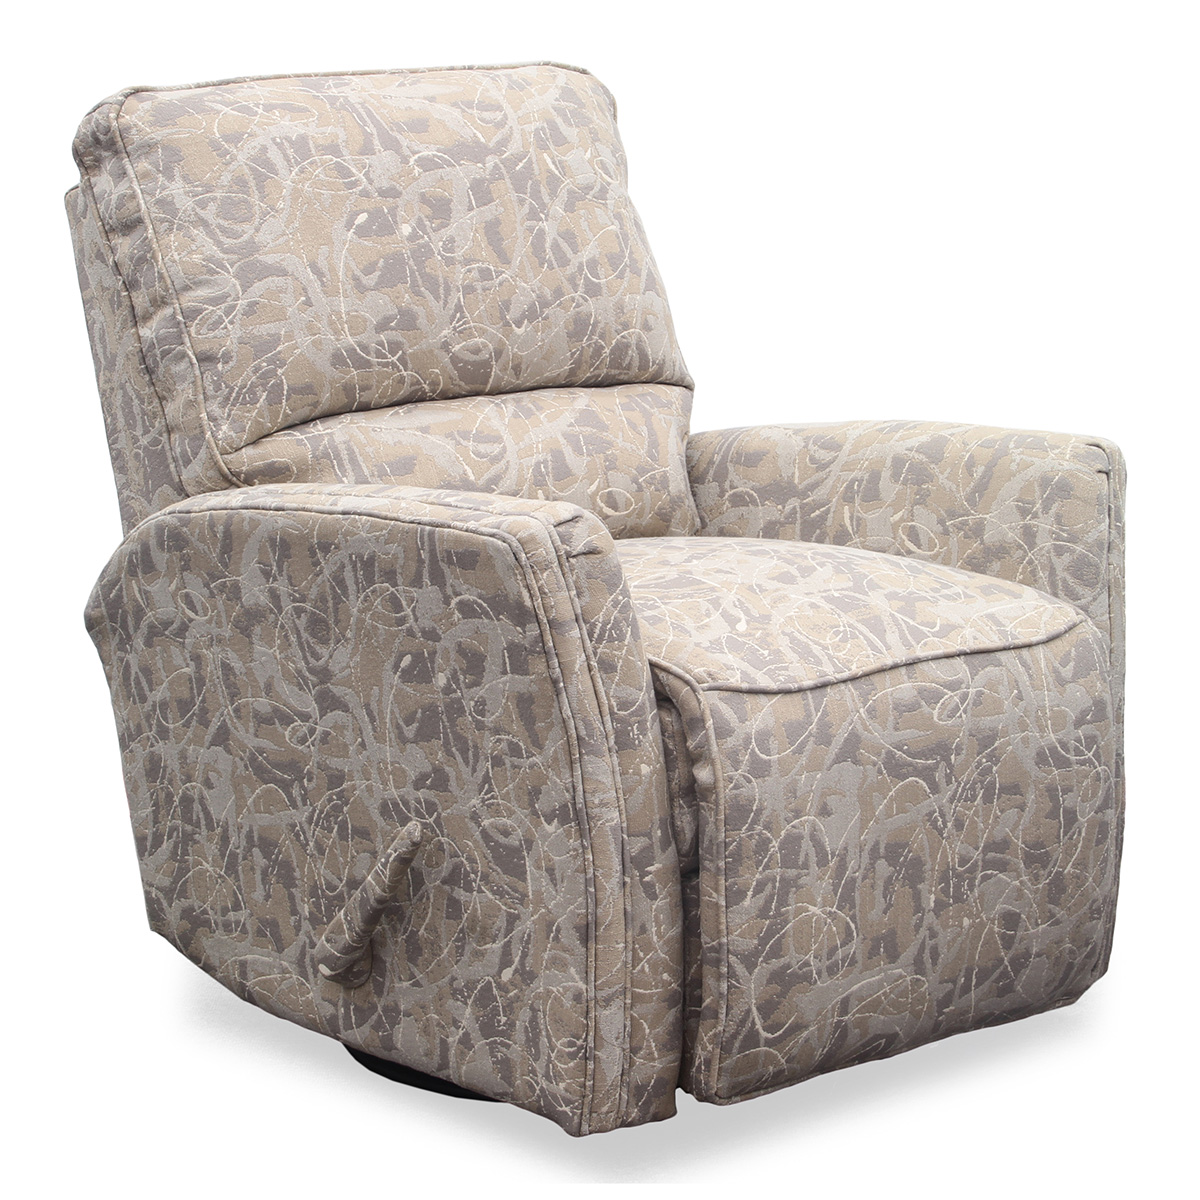 Cordoba Swivel Glider Recliner in Comet Cloud Fabric  sc 1 st  Dynamic Home Decor & BarcaLounger 8-4555-1068-10 Cordoba Swivel Glider Recliner in ... islam-shia.org